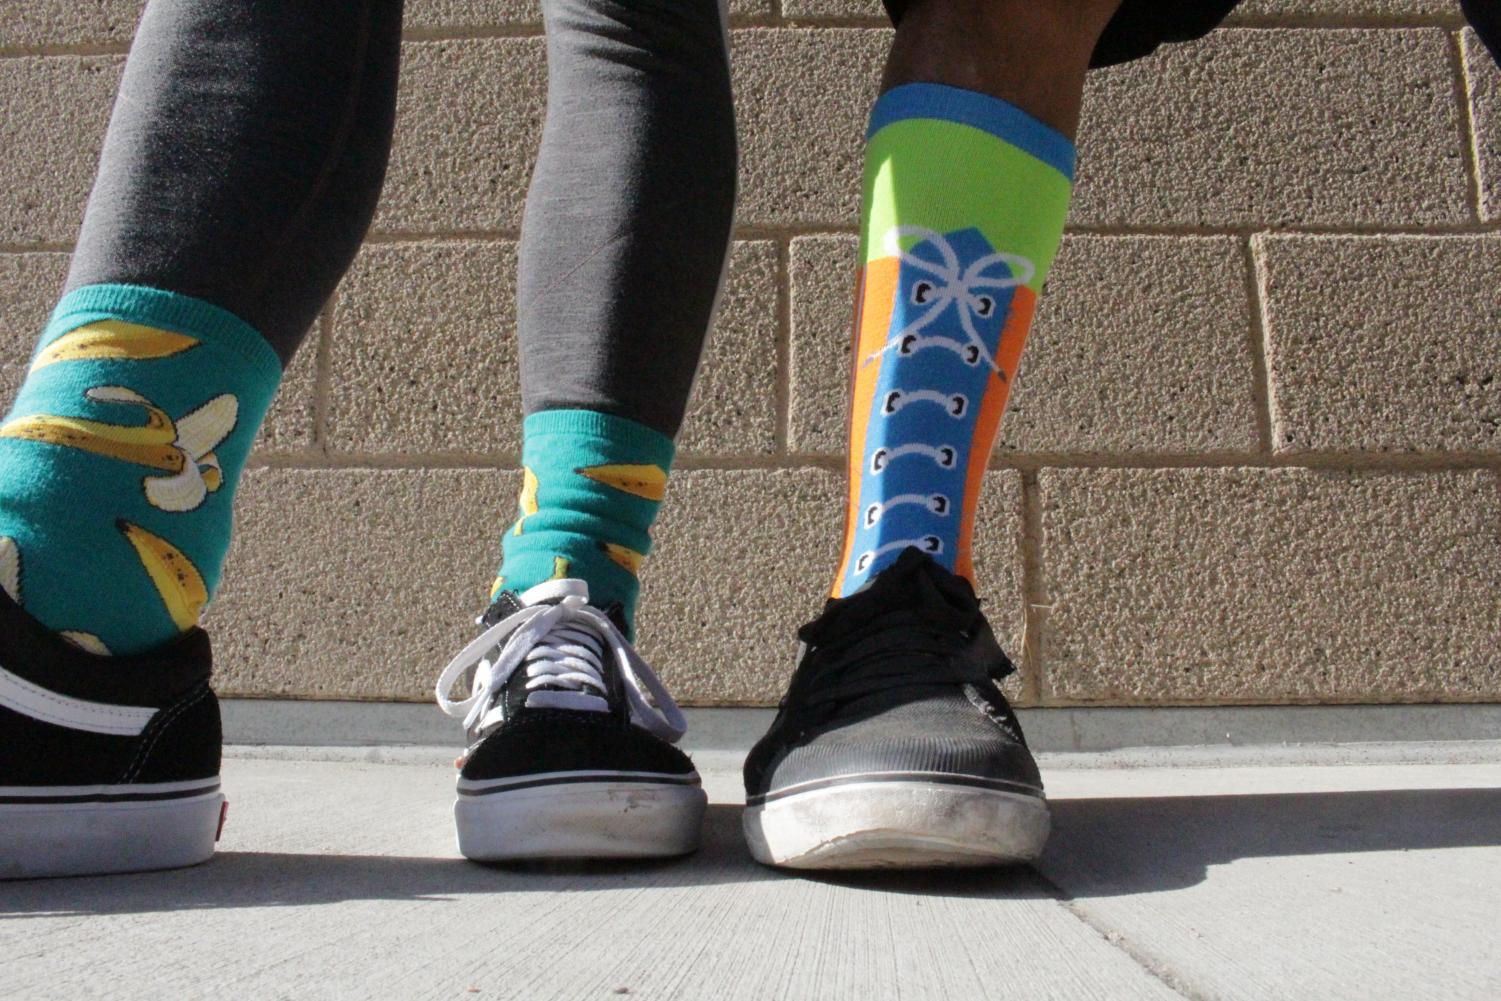 Both+students+and+staff+showed+their+spirit+throughout+the+week.+Crazy+socks+were+seen+everywhere+on+campus+during+this+spirit+day.